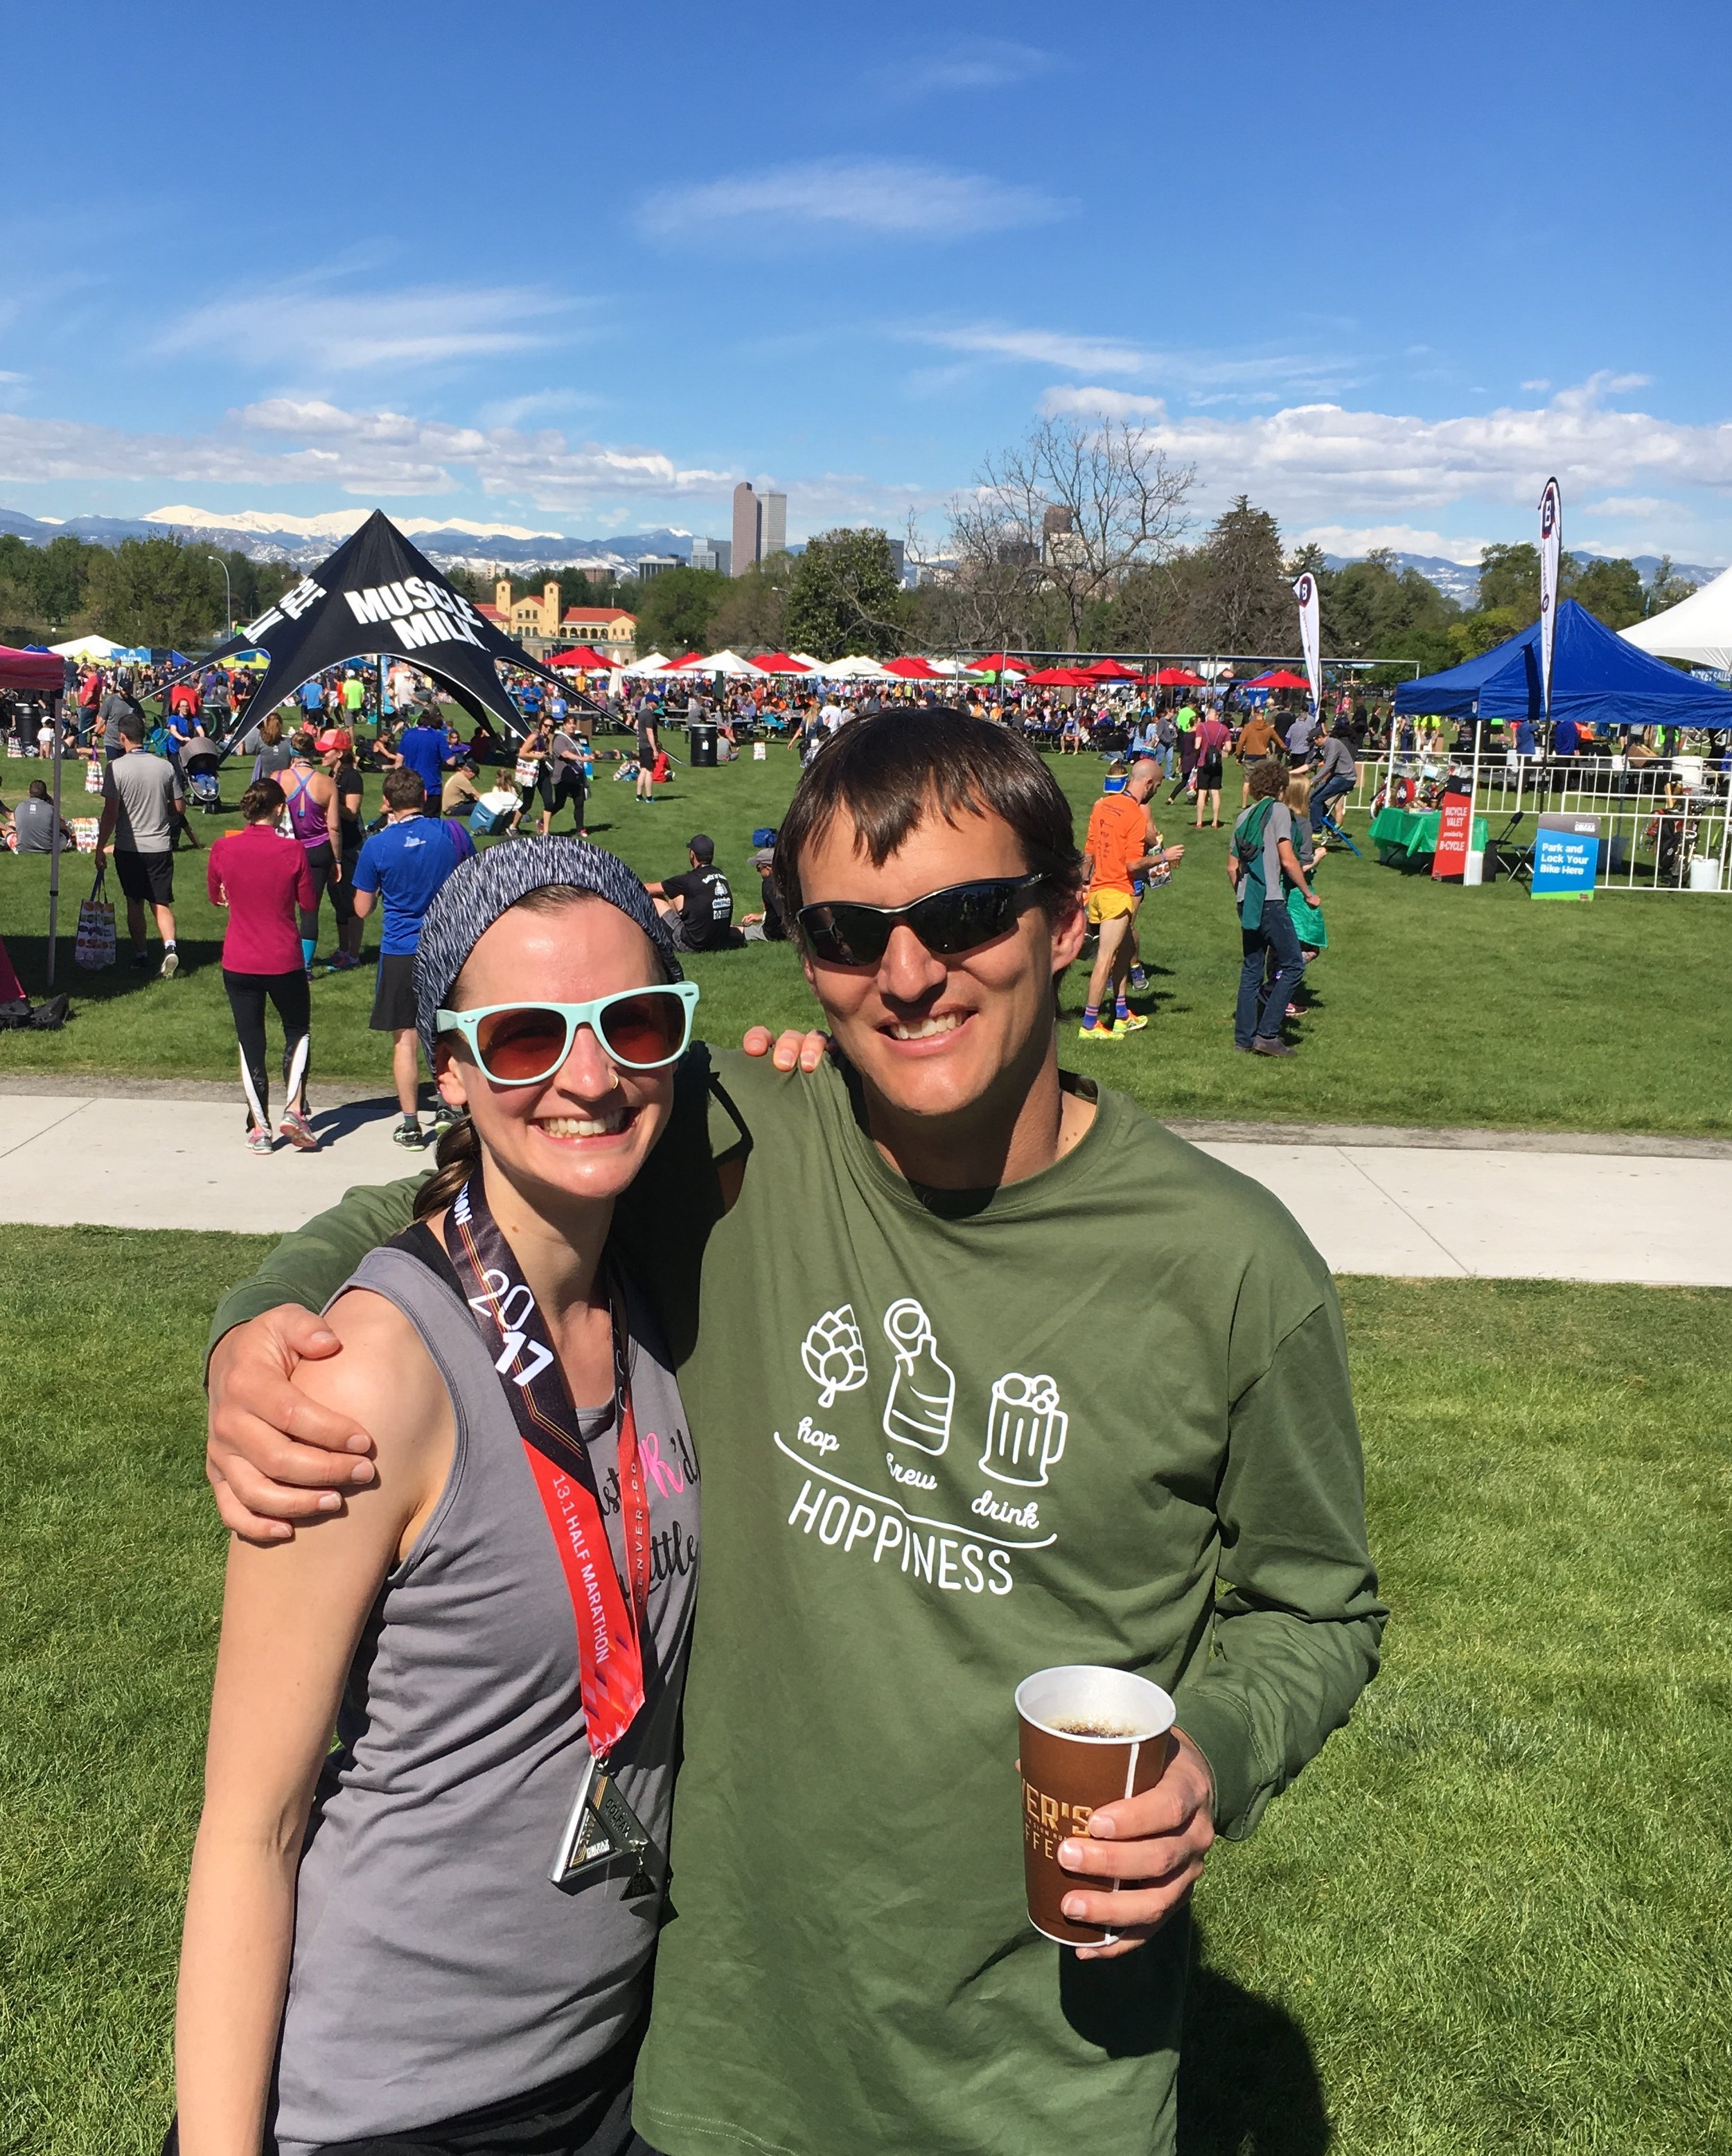 Ann & her cheerleader at the Colfax Half Marathon, May 2017